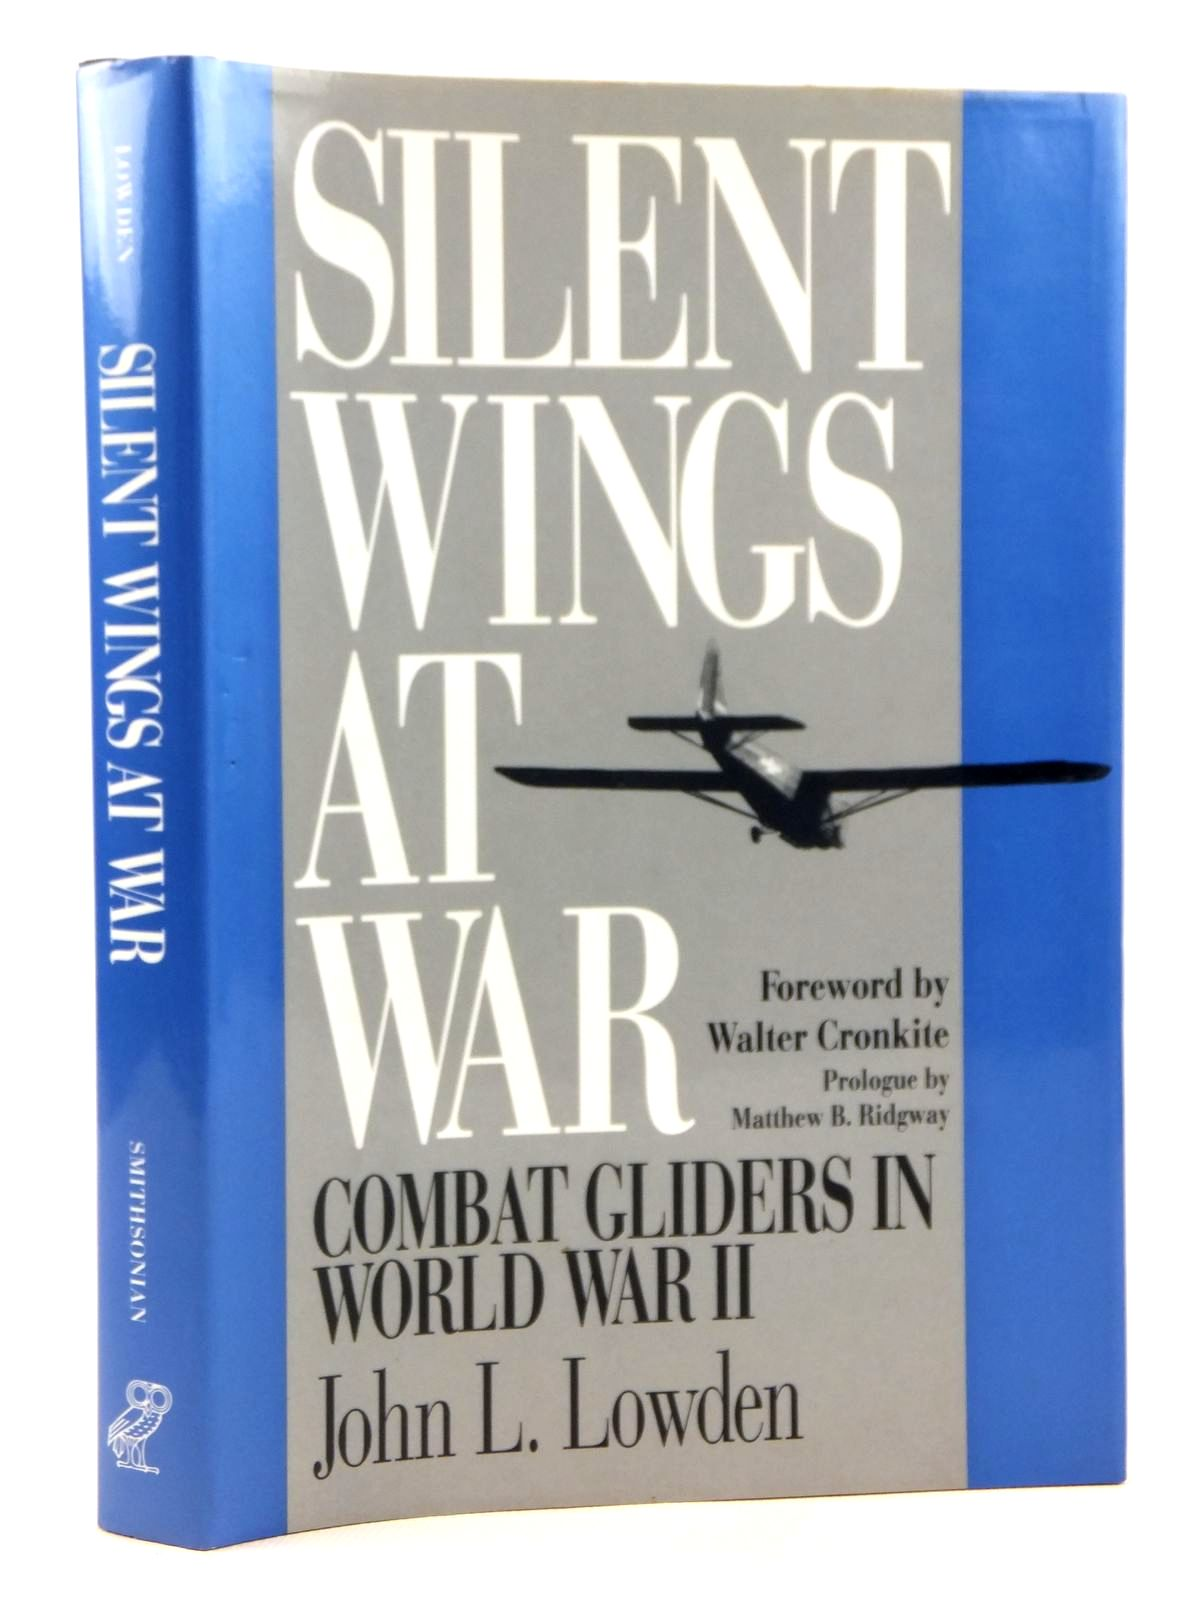 Photo of SILENT WINGS AT WAR written by Lowden, John L. published by Smithsonian Institution Press (STOCK CODE: 1608889)  for sale by Stella & Rose's Books